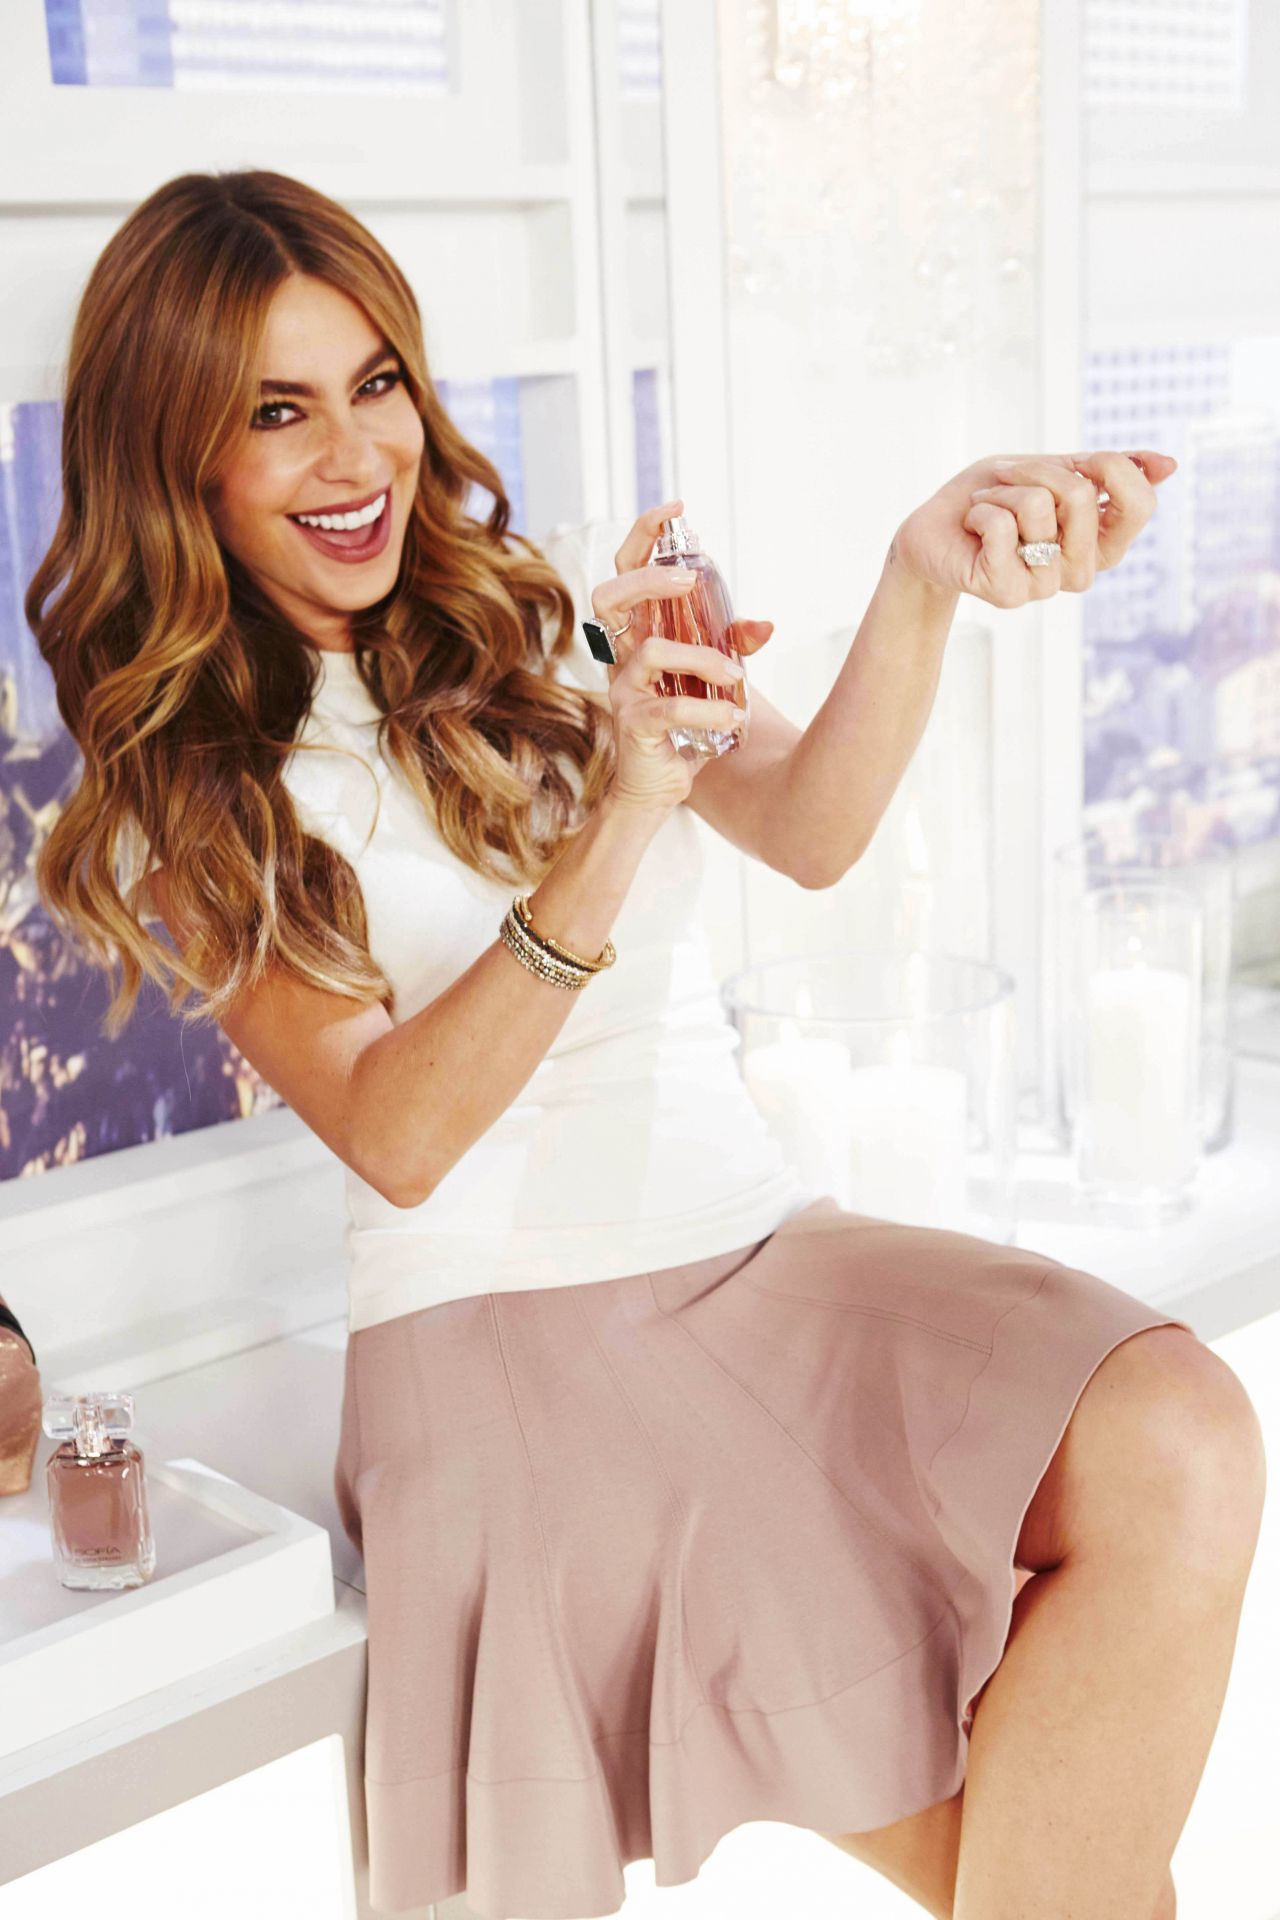 Sofia Vergara Launches New Fragrance - SOFIA